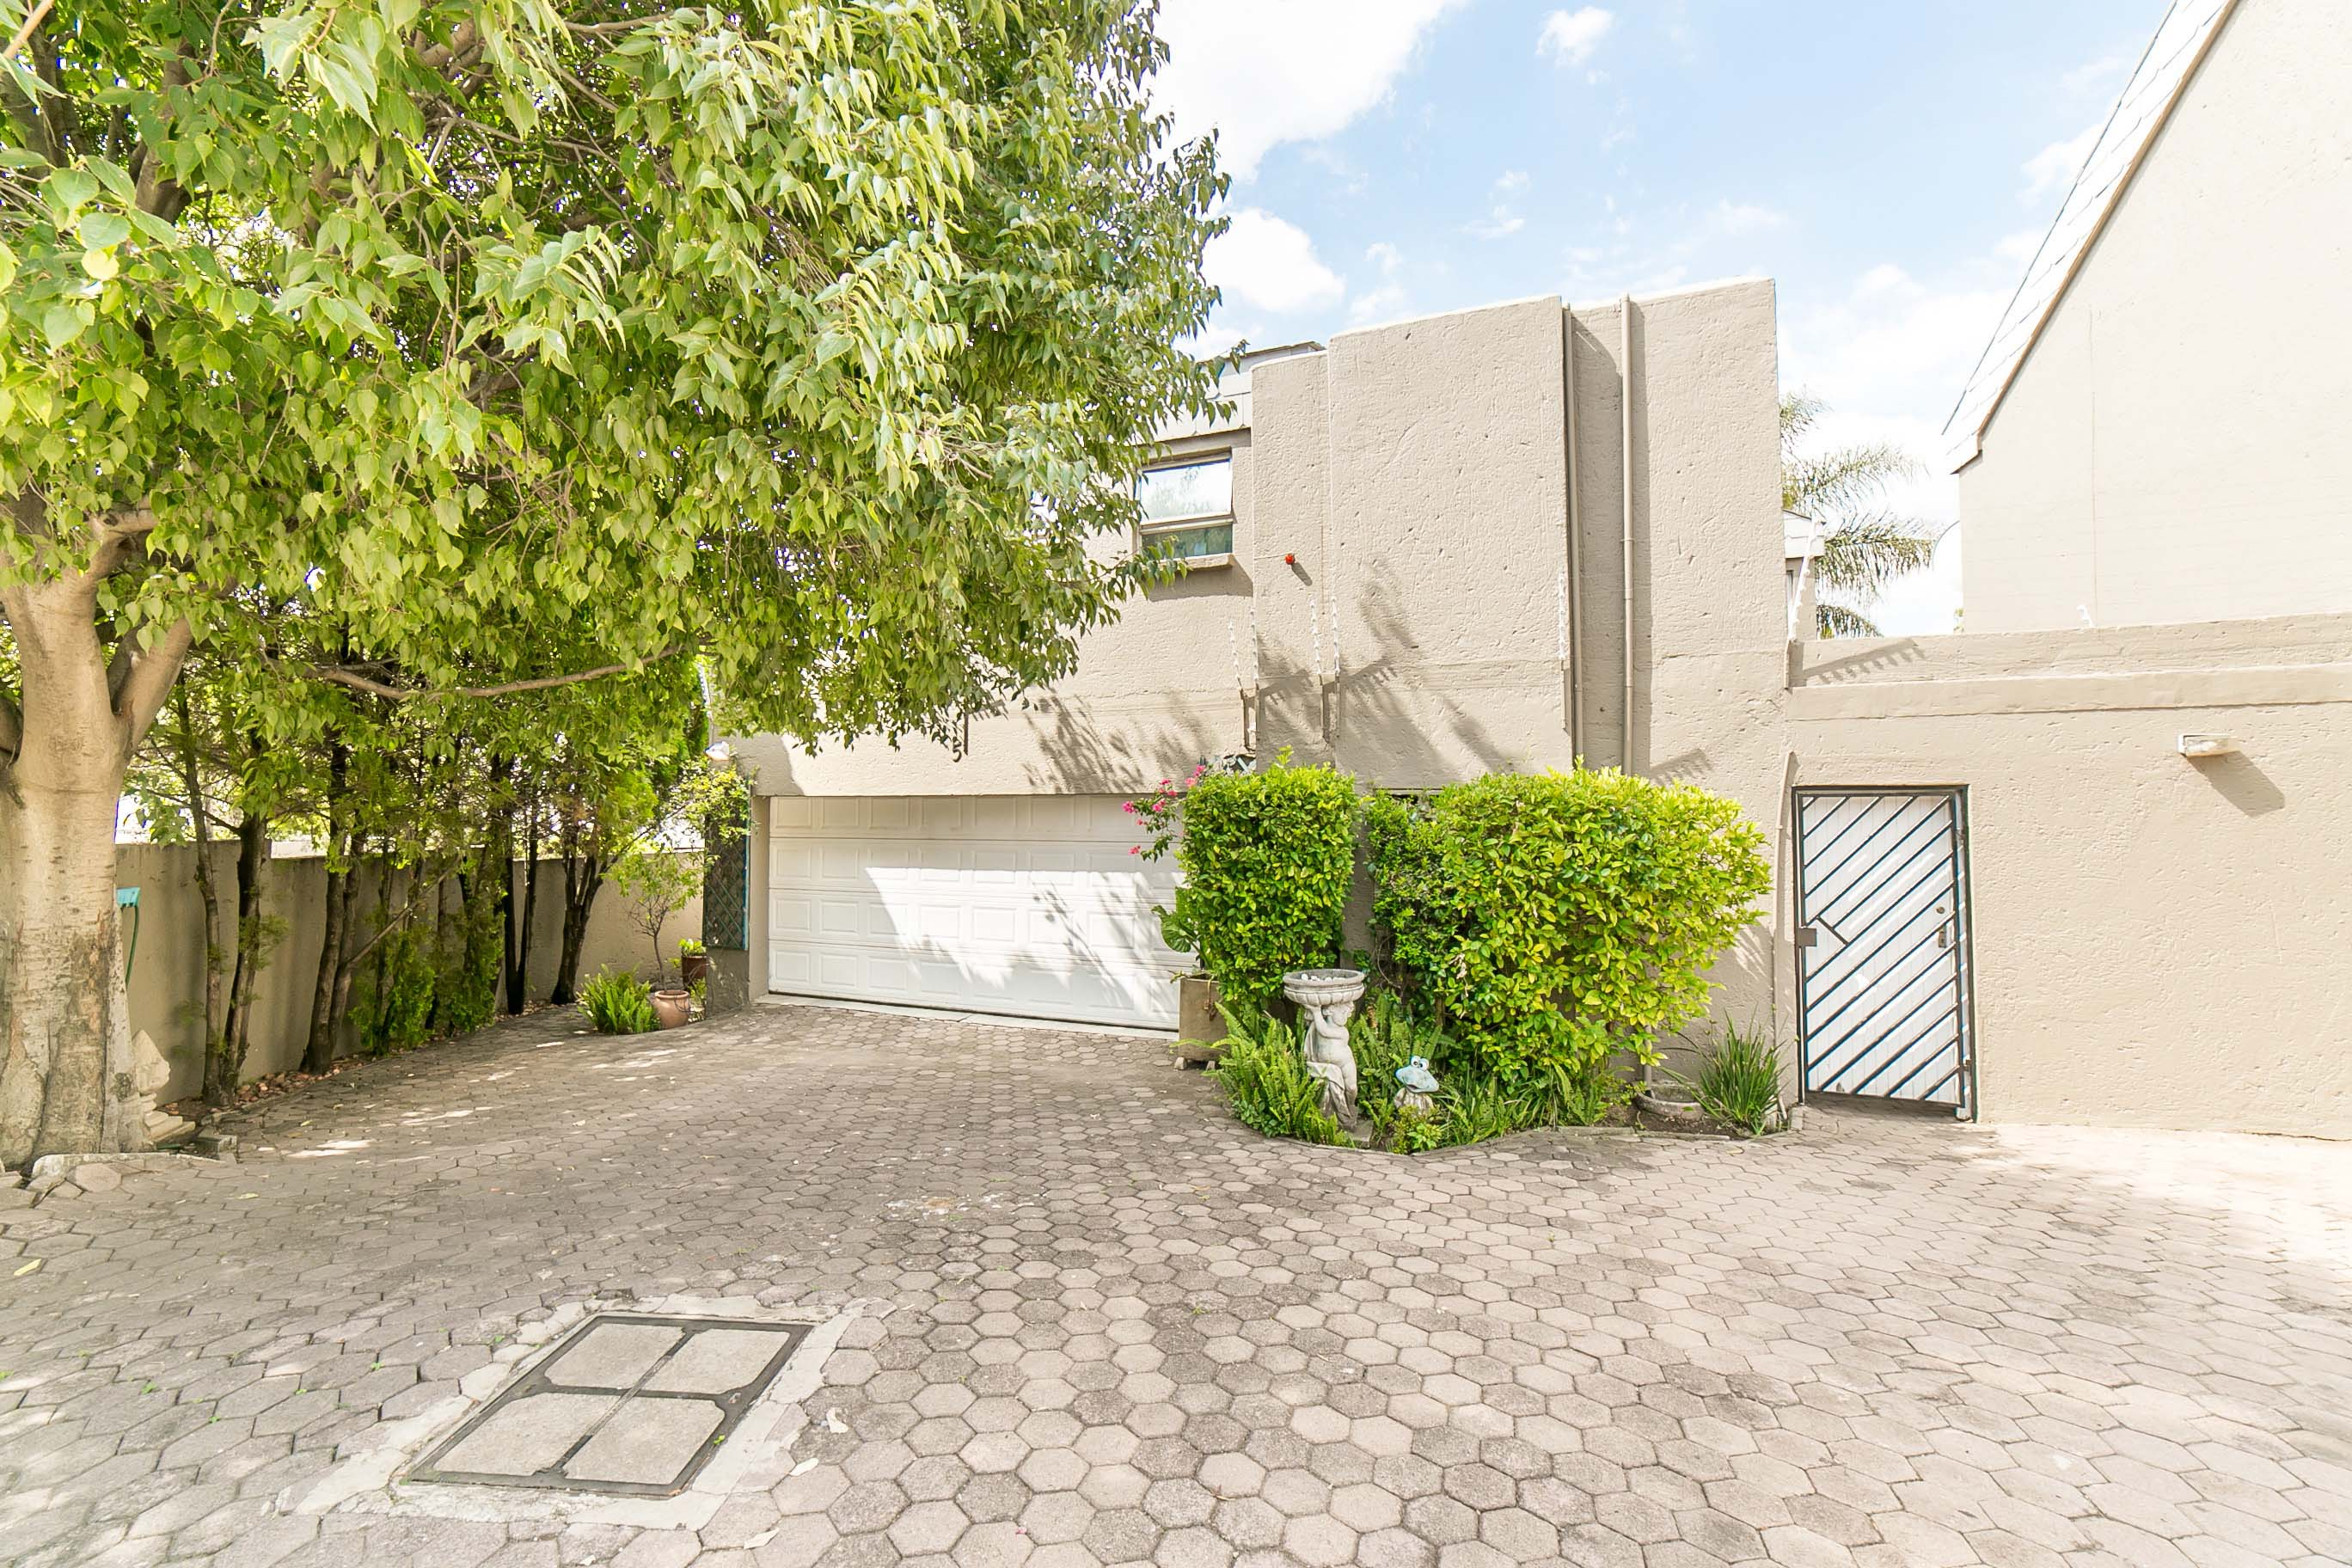 4 Bedroom House for sale in Lonehill ENT0082001 : photo#27